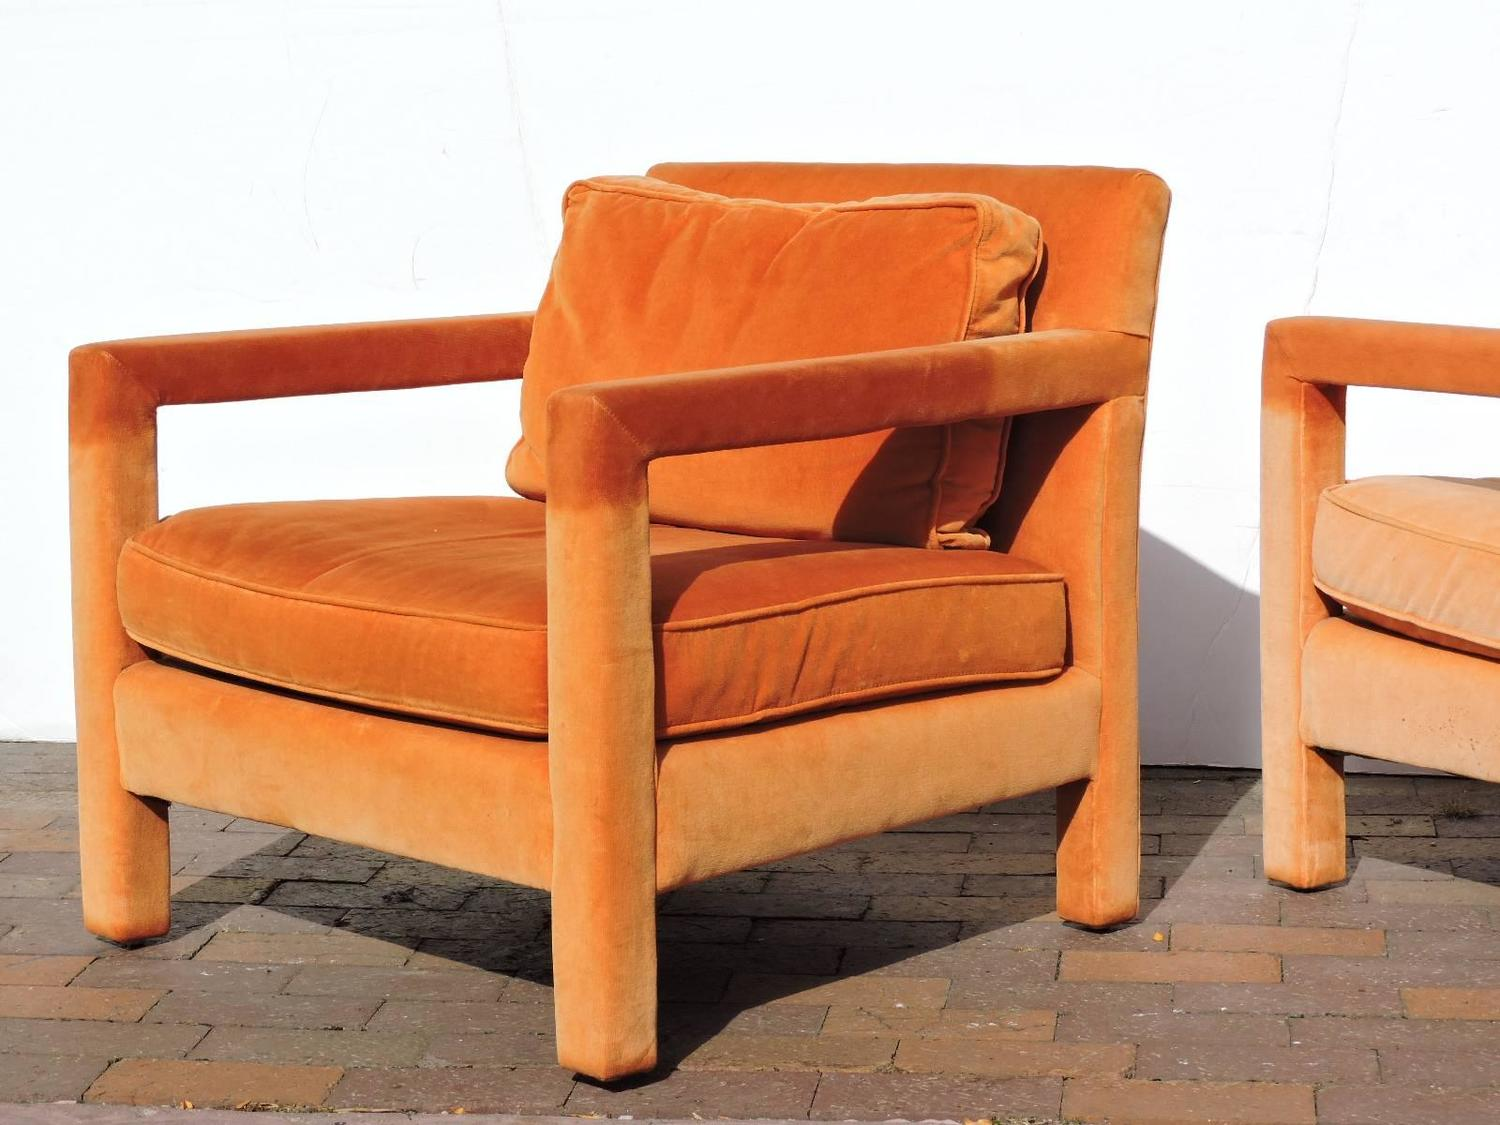 orange parsons chair recliner lift rental upholstered lounge chairs in the style of